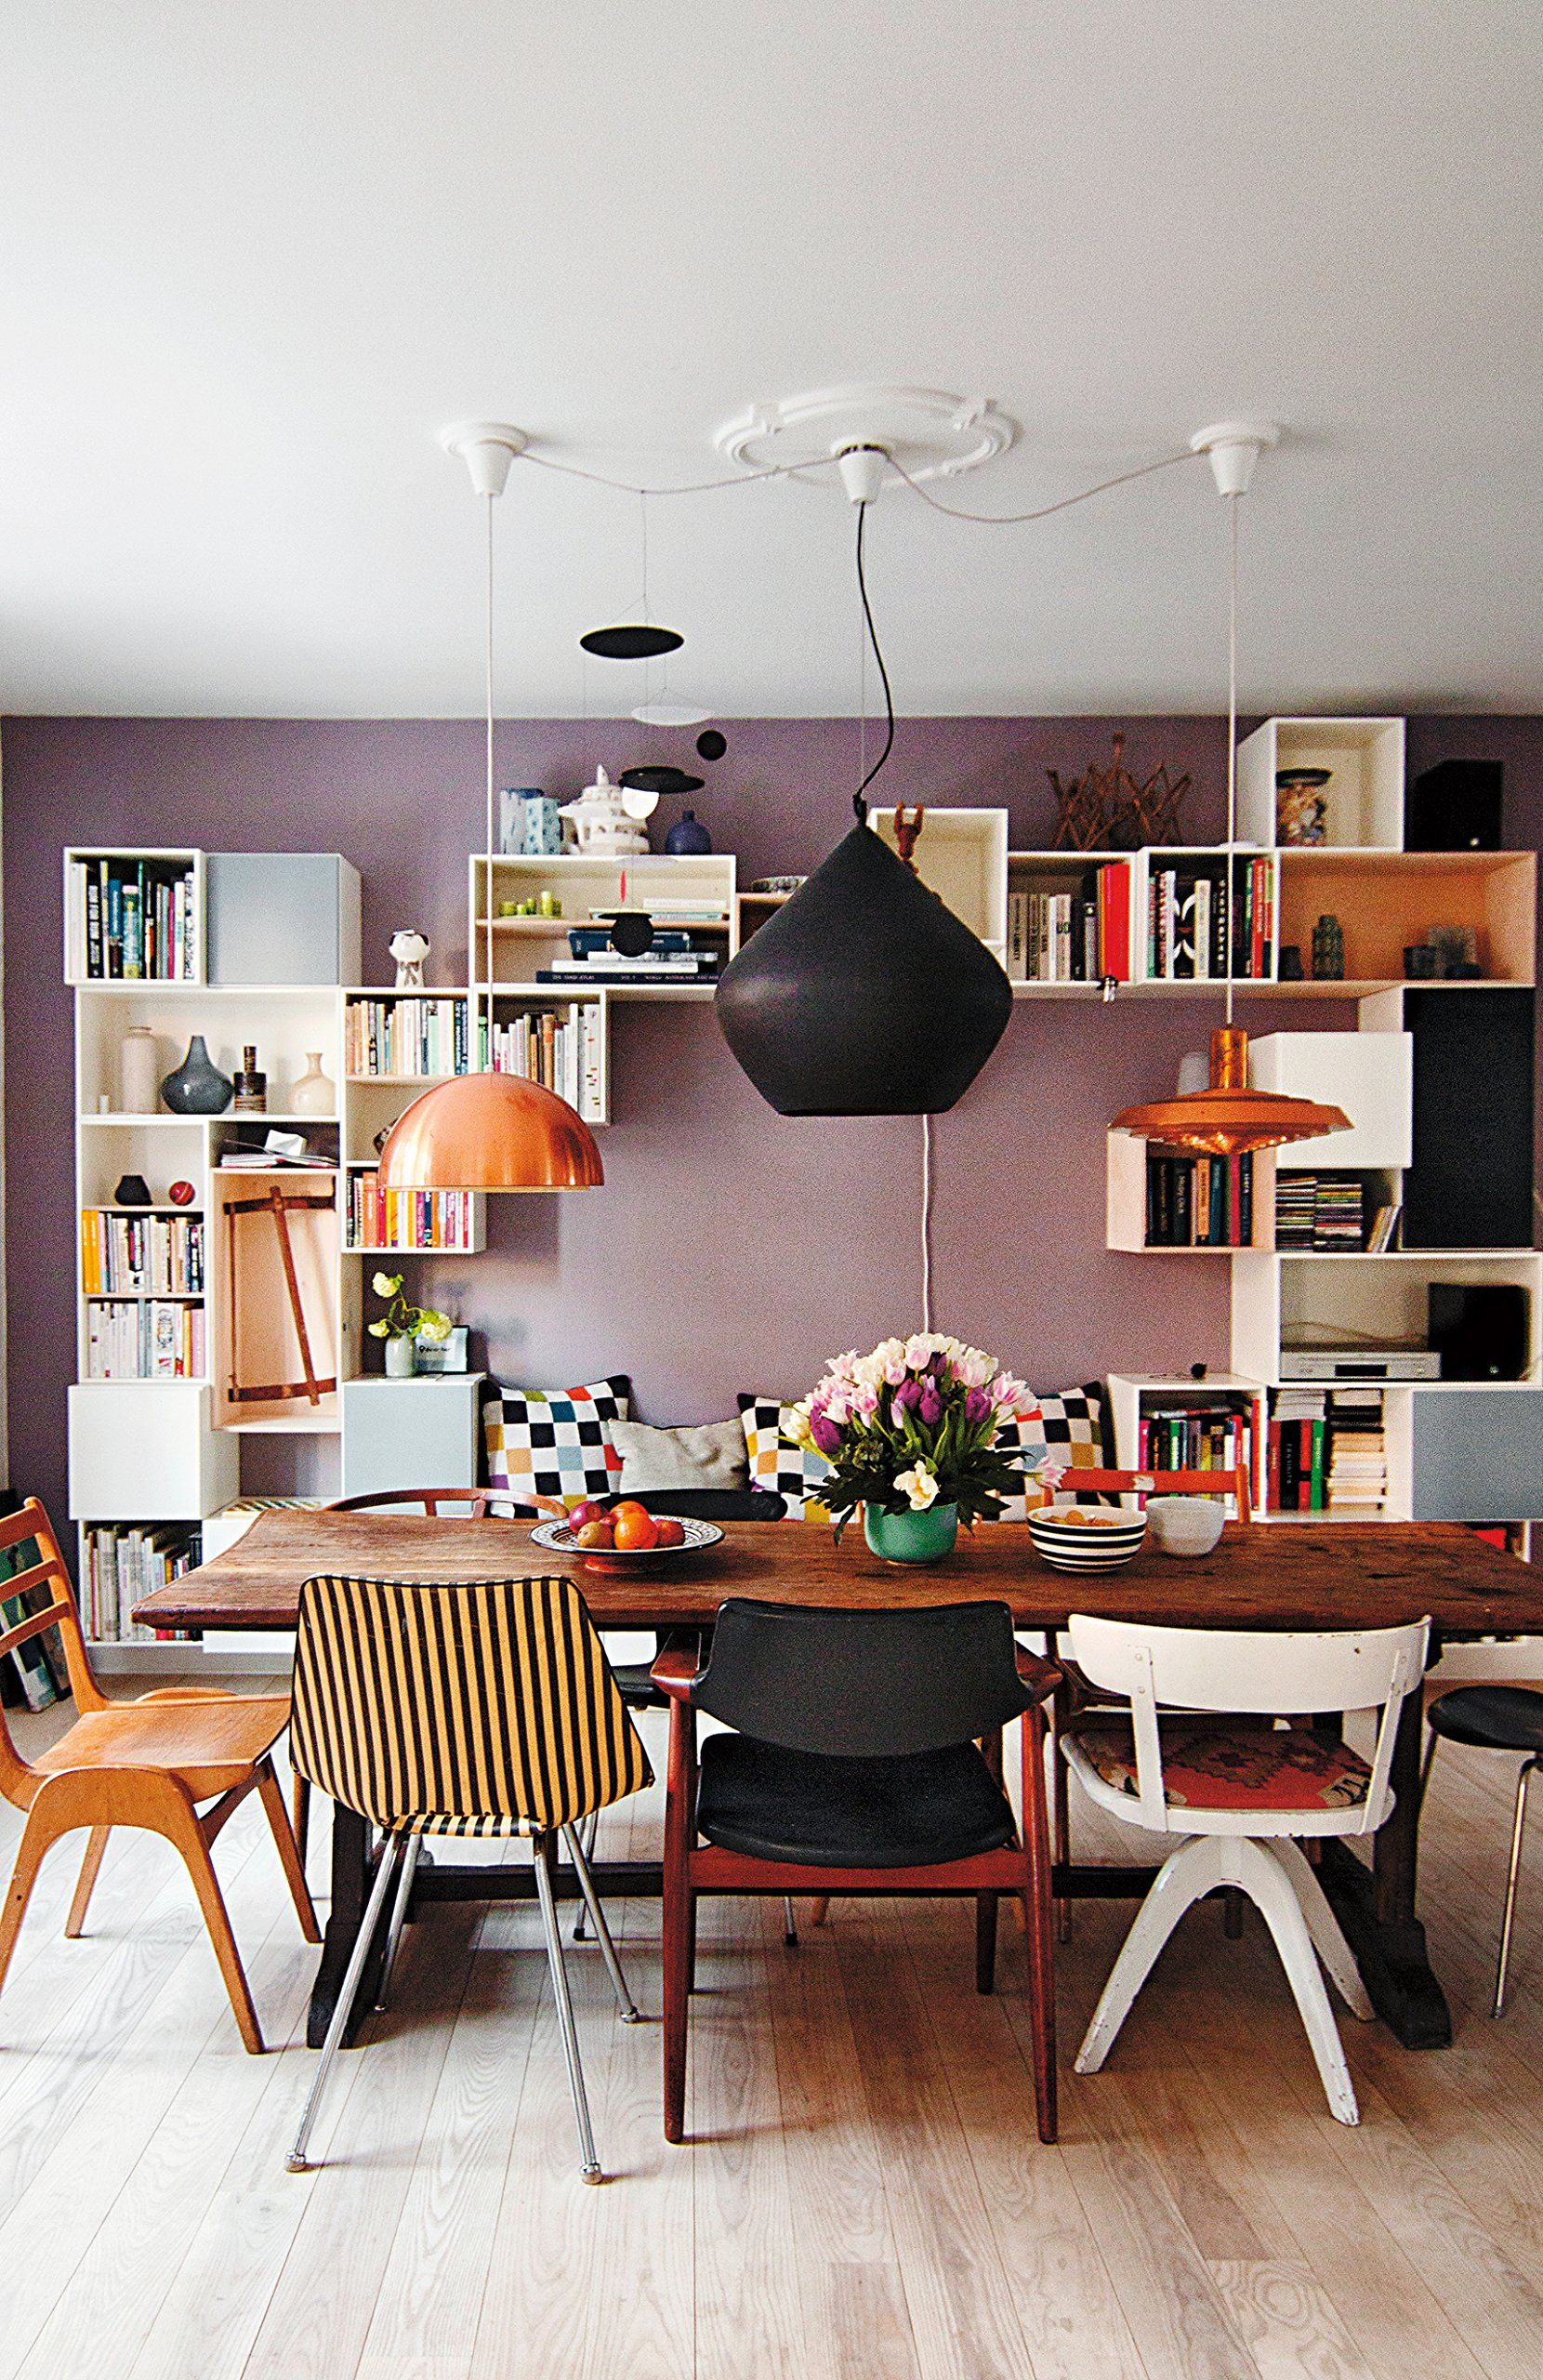 Home Style By City Ideas And Inspiration From Paris, London,